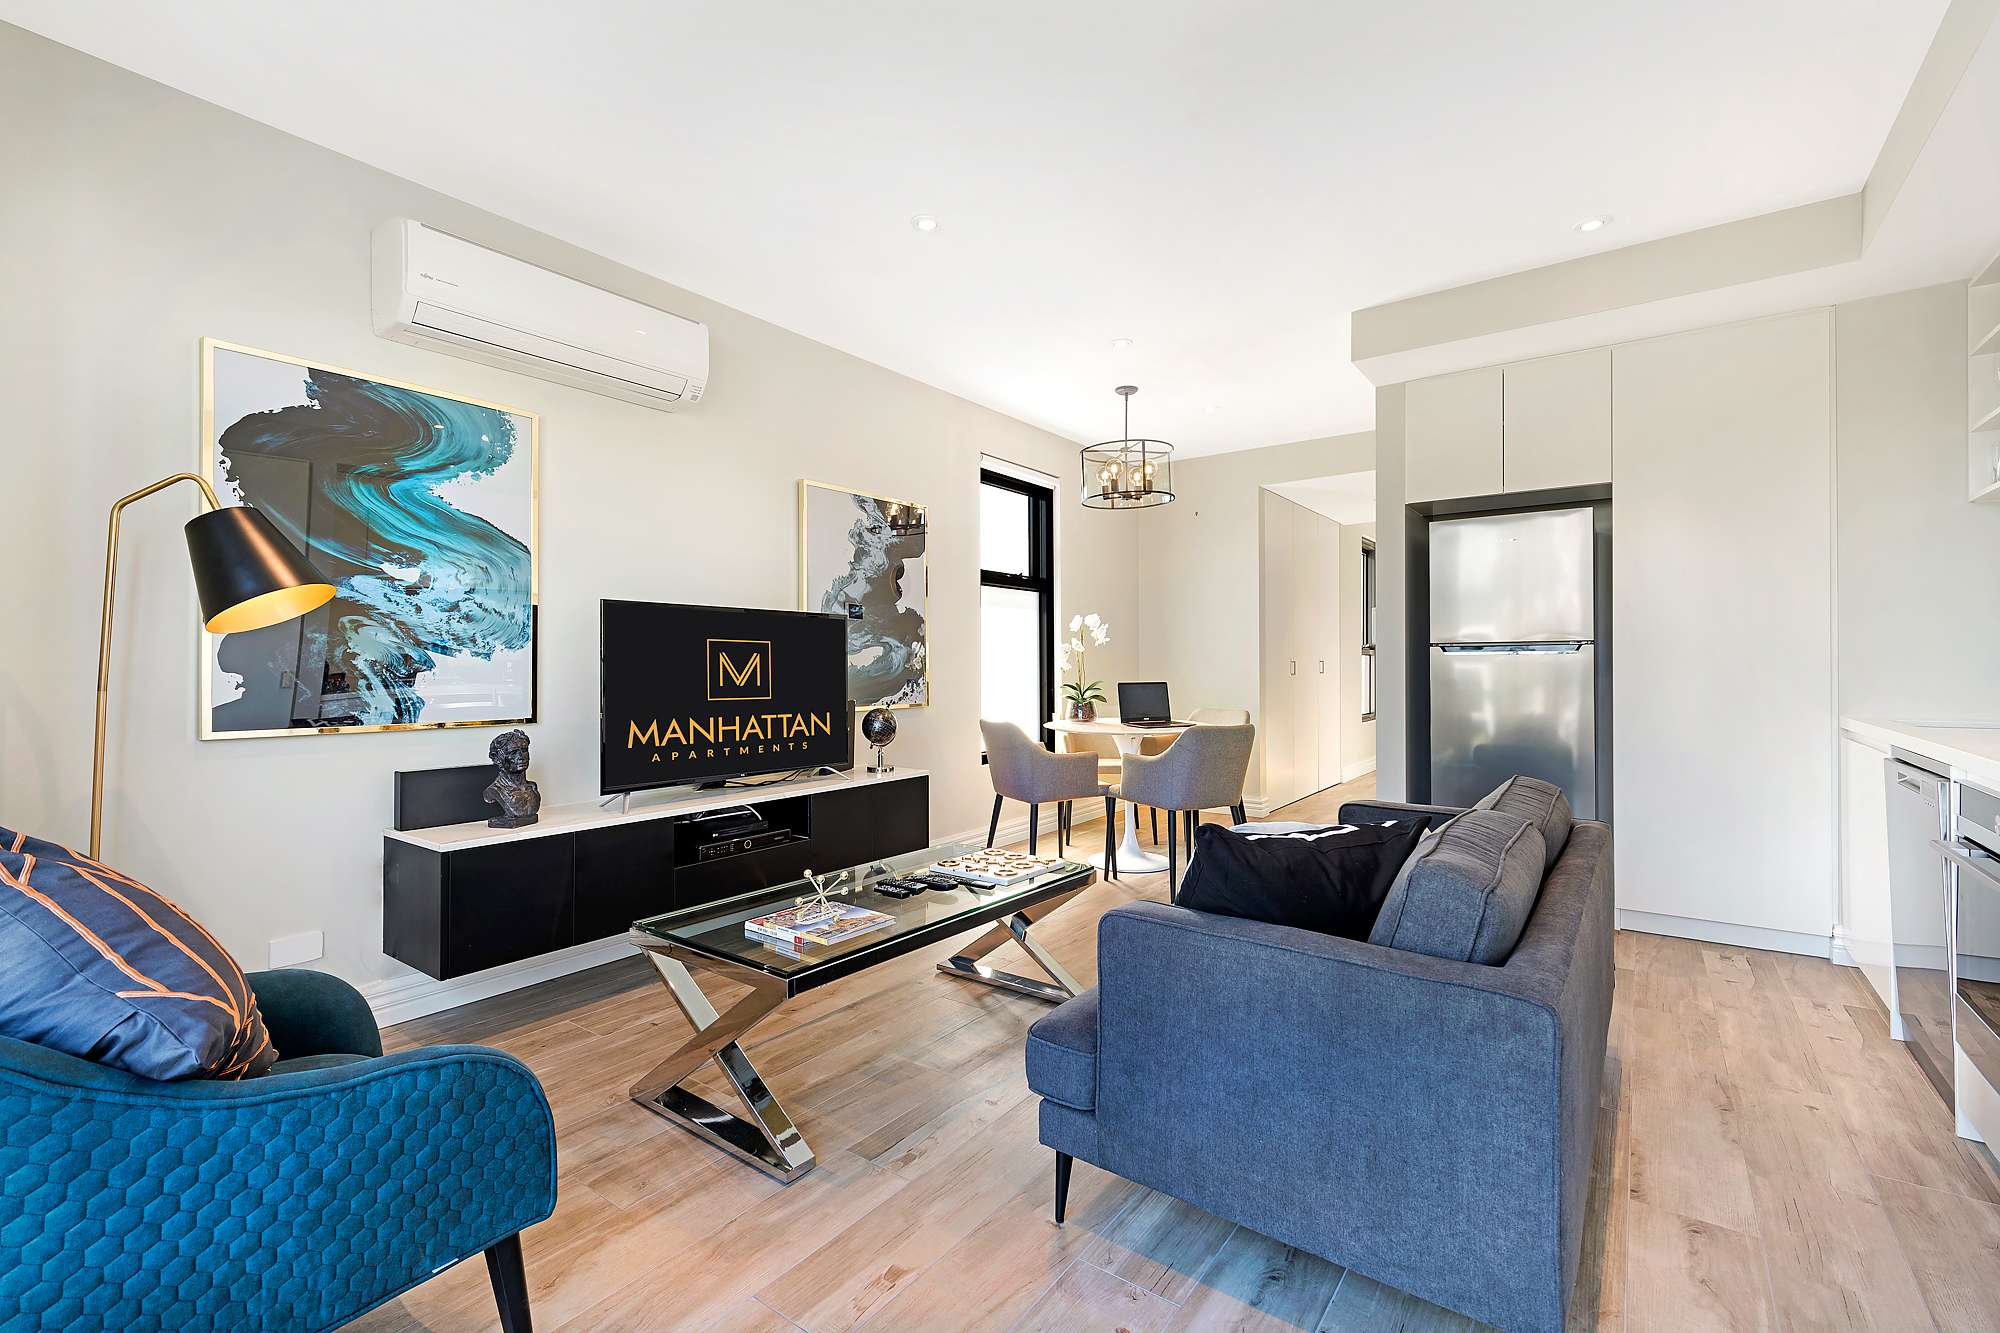 Manhattan Apartments Notting Hill Long Stay Serviced Apartments